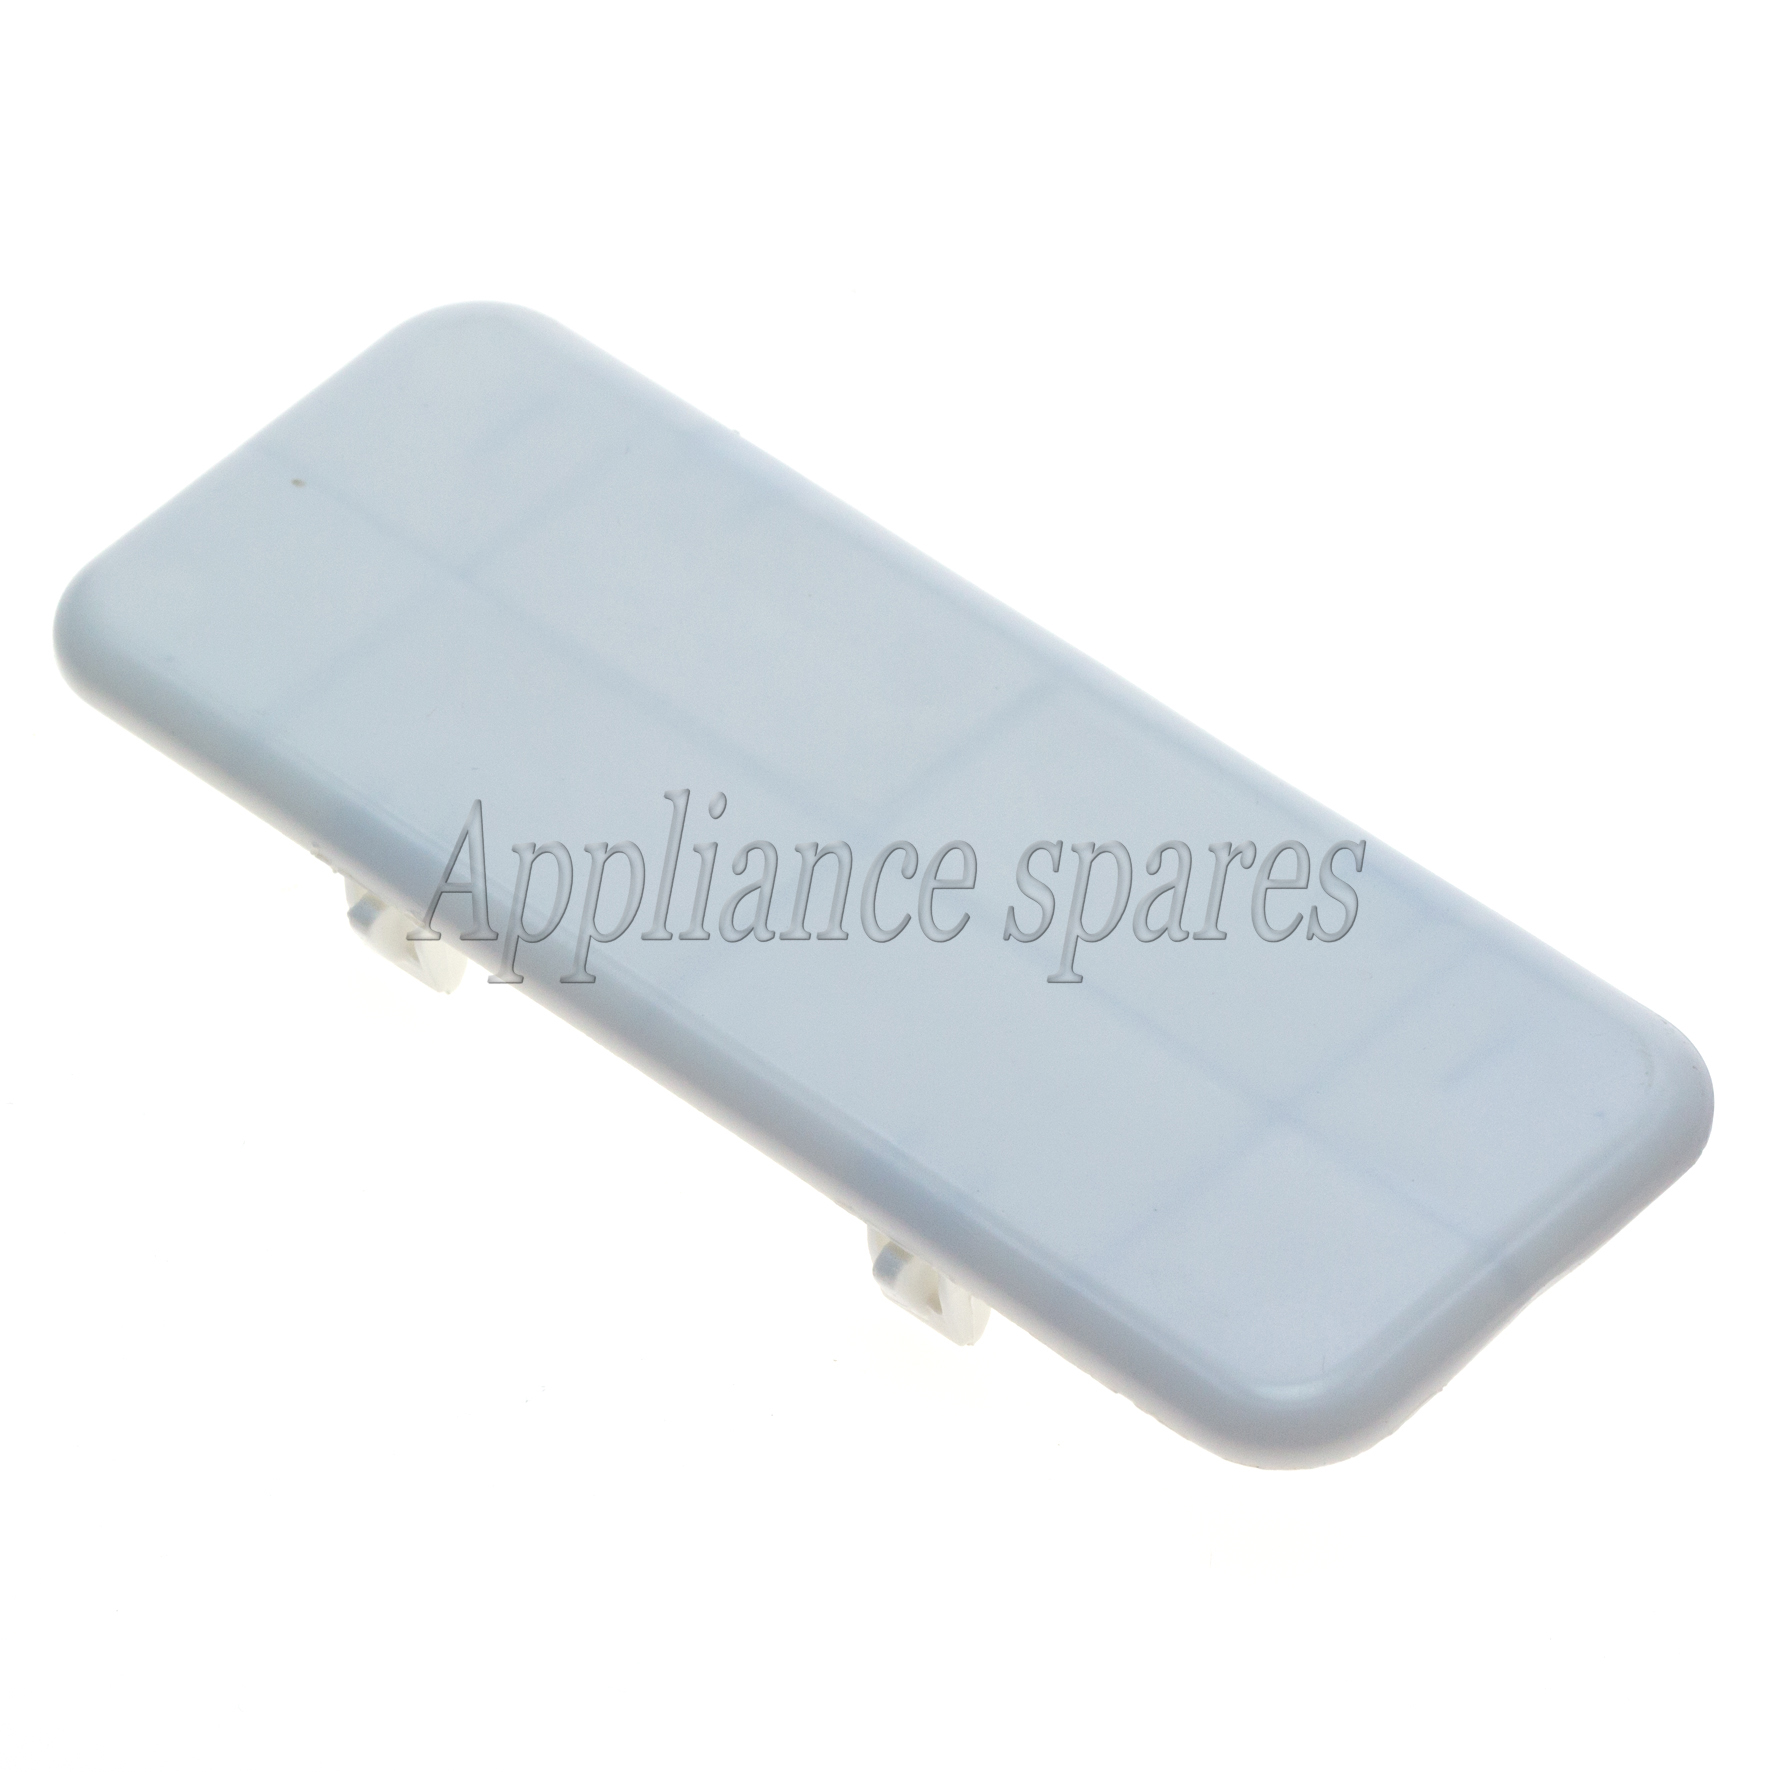 Lg Microwave Oven Wave Guide Cover White